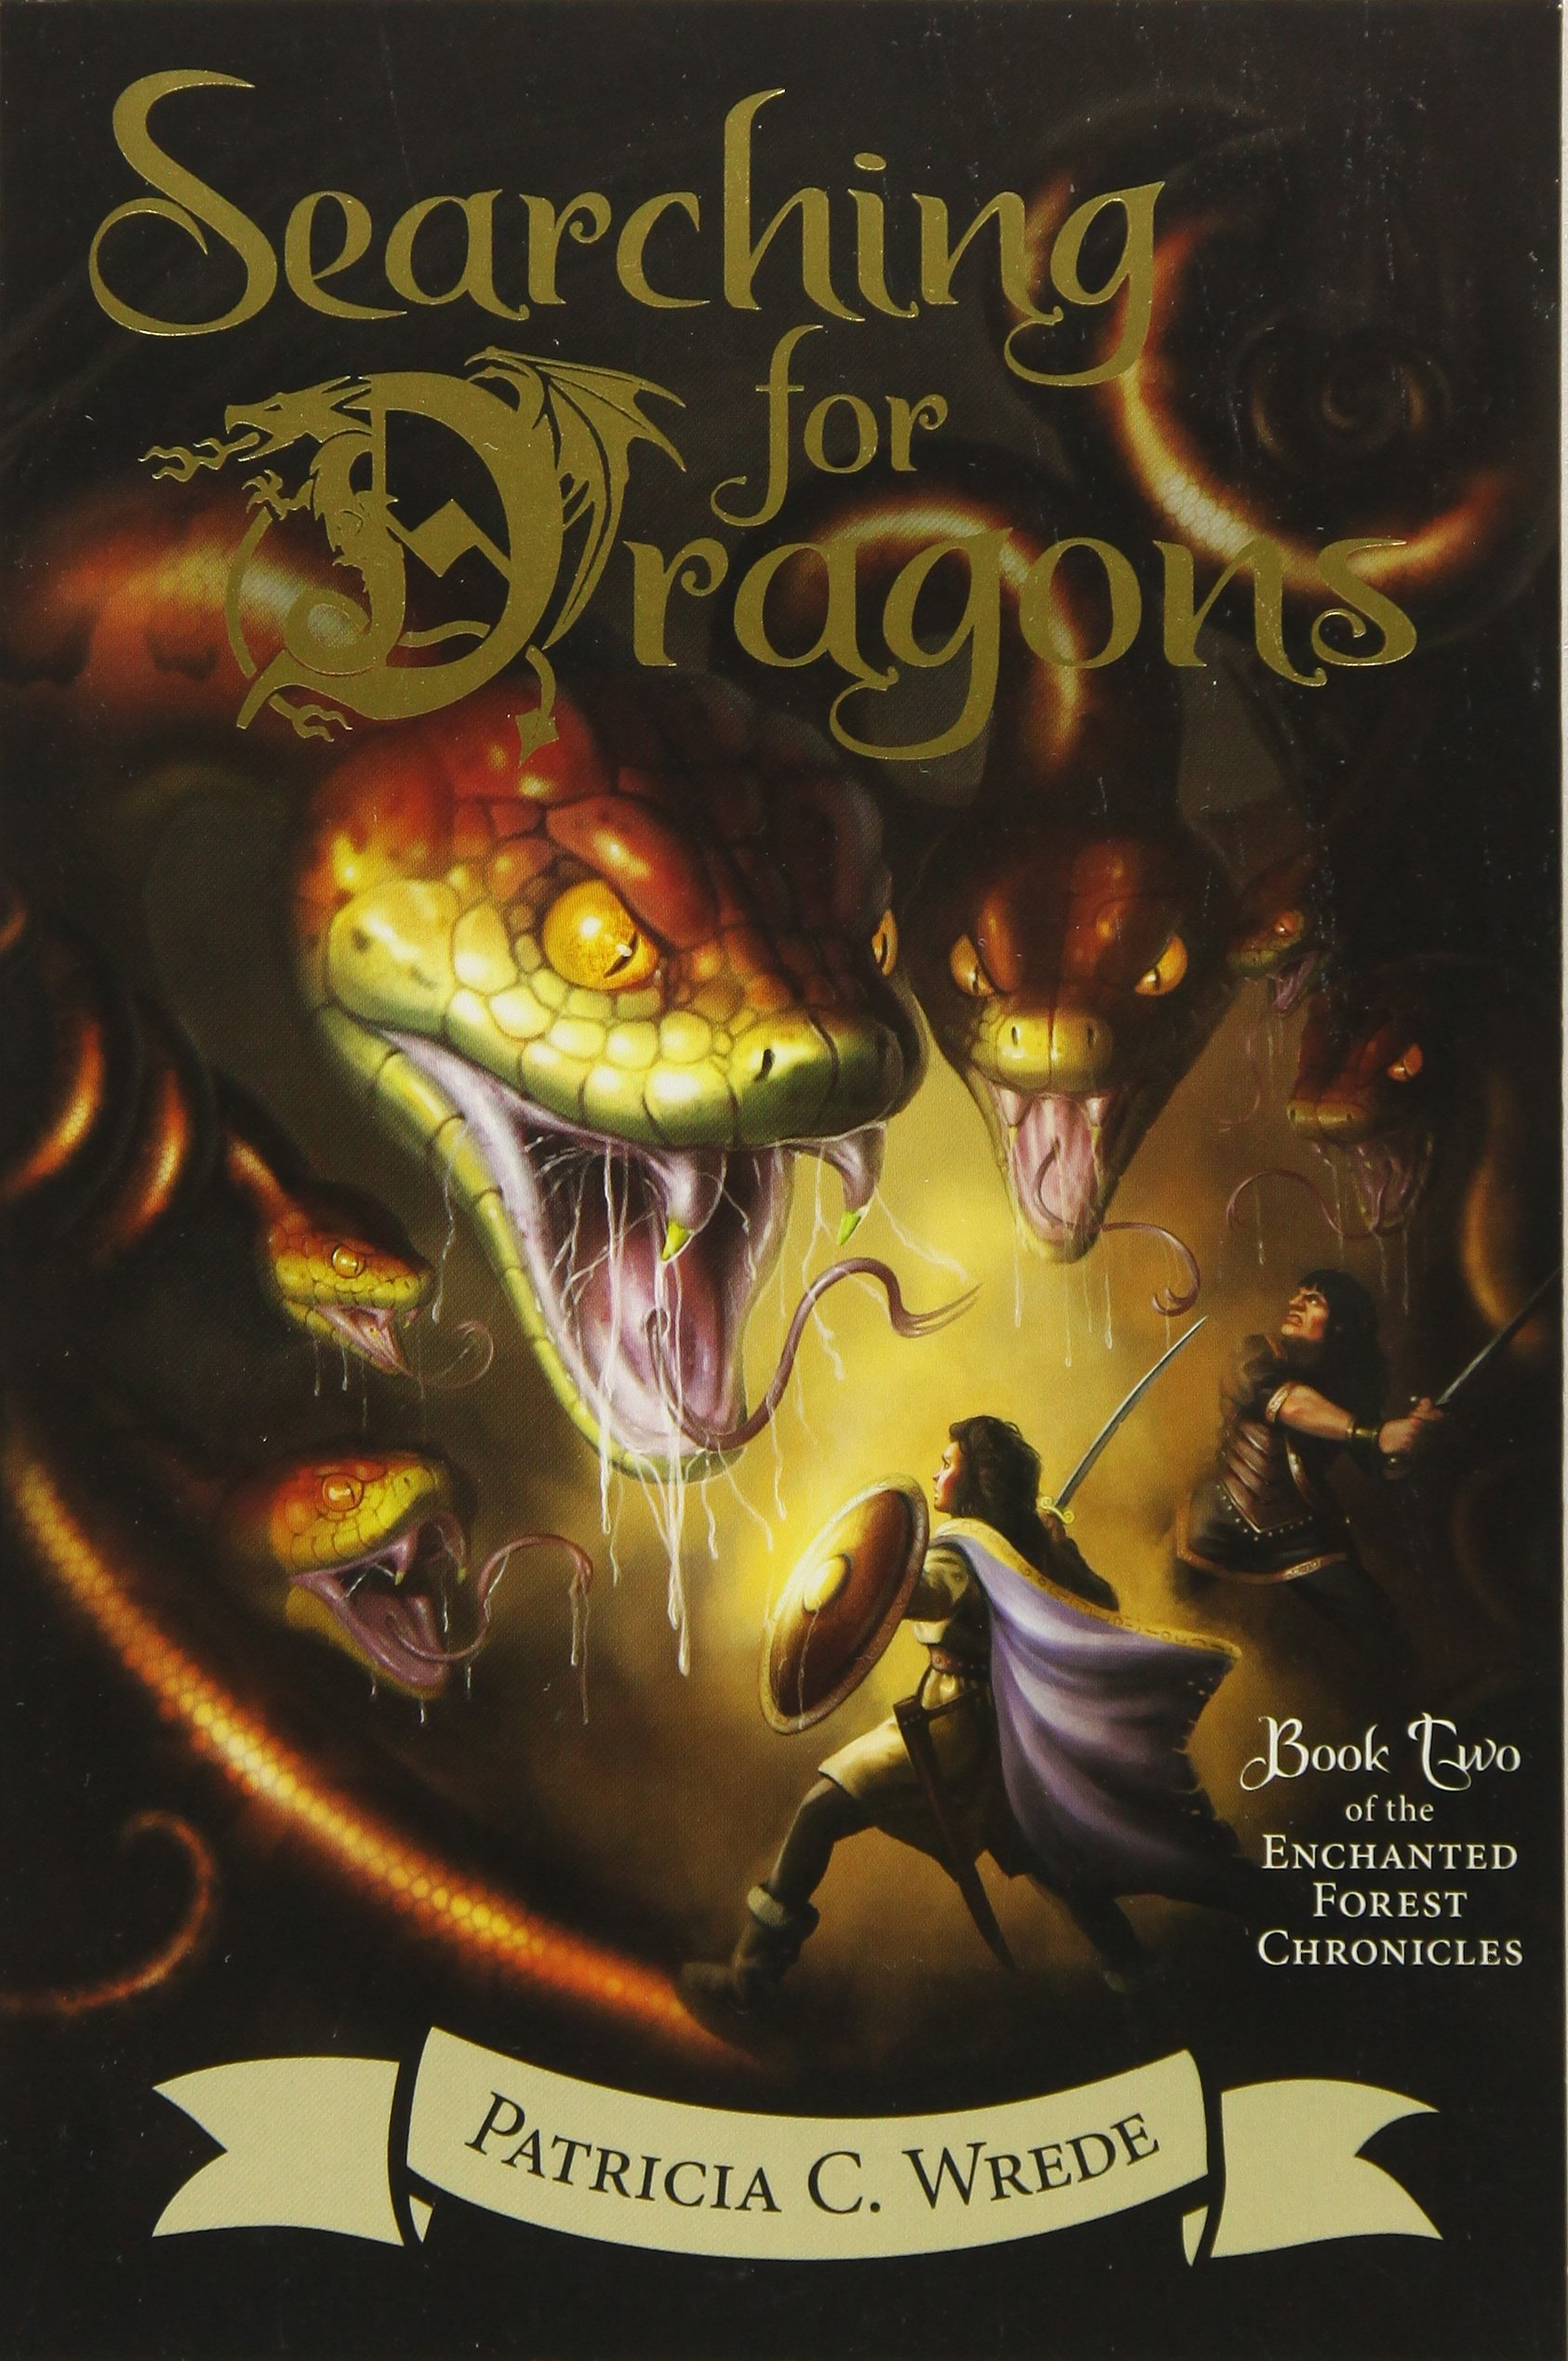 Searching for Dragons: The Enchanted Forest Chronicles, Book Two: Patricia  C. Wrede: 9780544541467: Amazon.com: Books